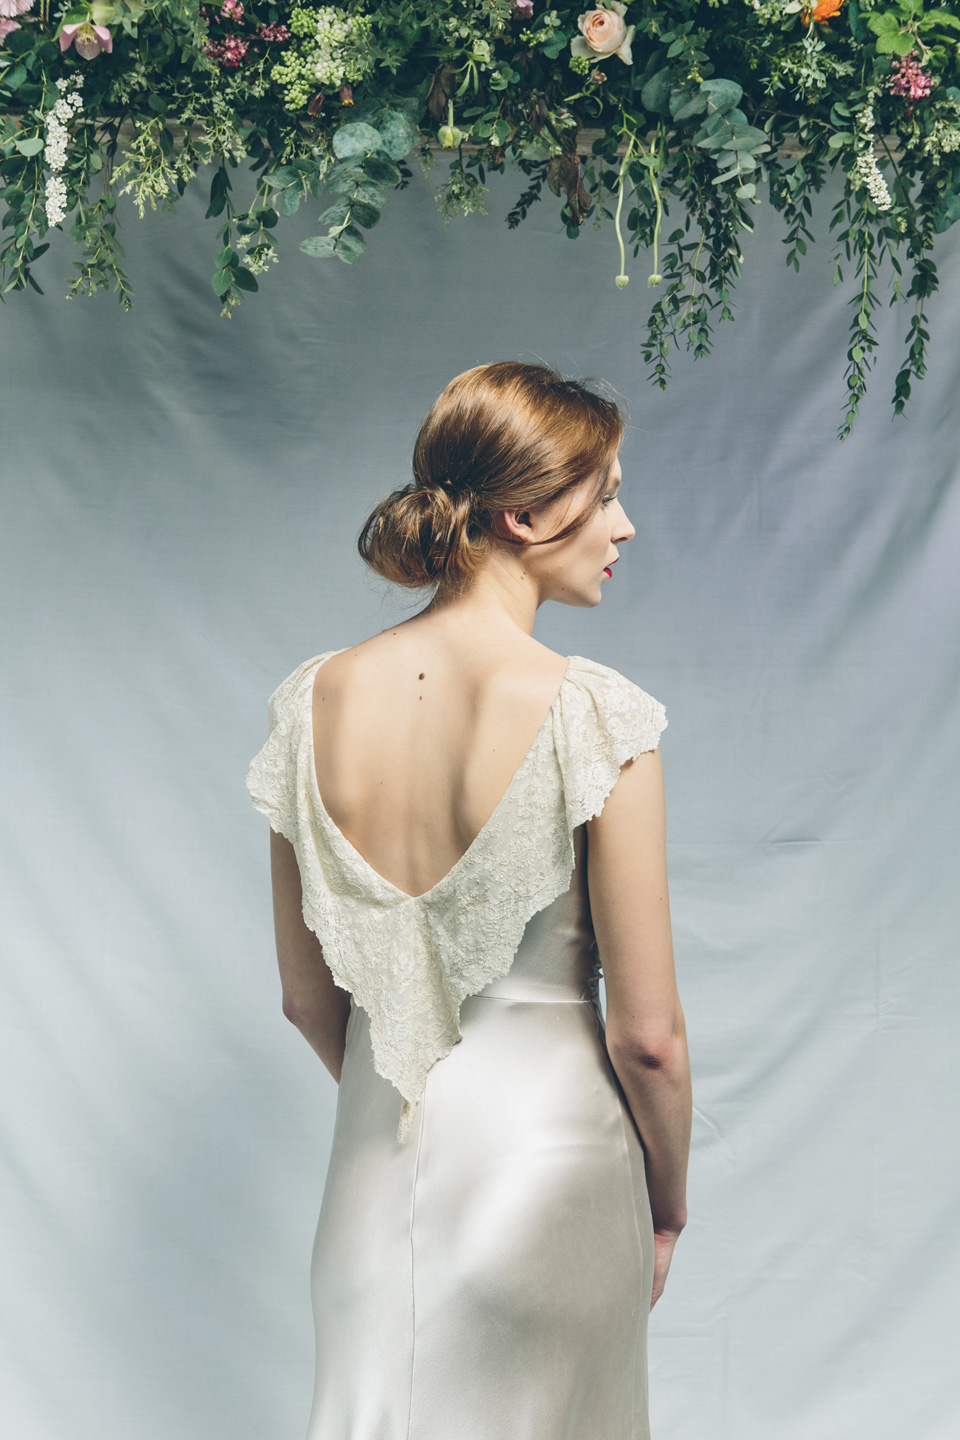 Introducing Kate Beaumont – Designer & Maker Of Elegant Wedding Gowns With A Vintage Twist